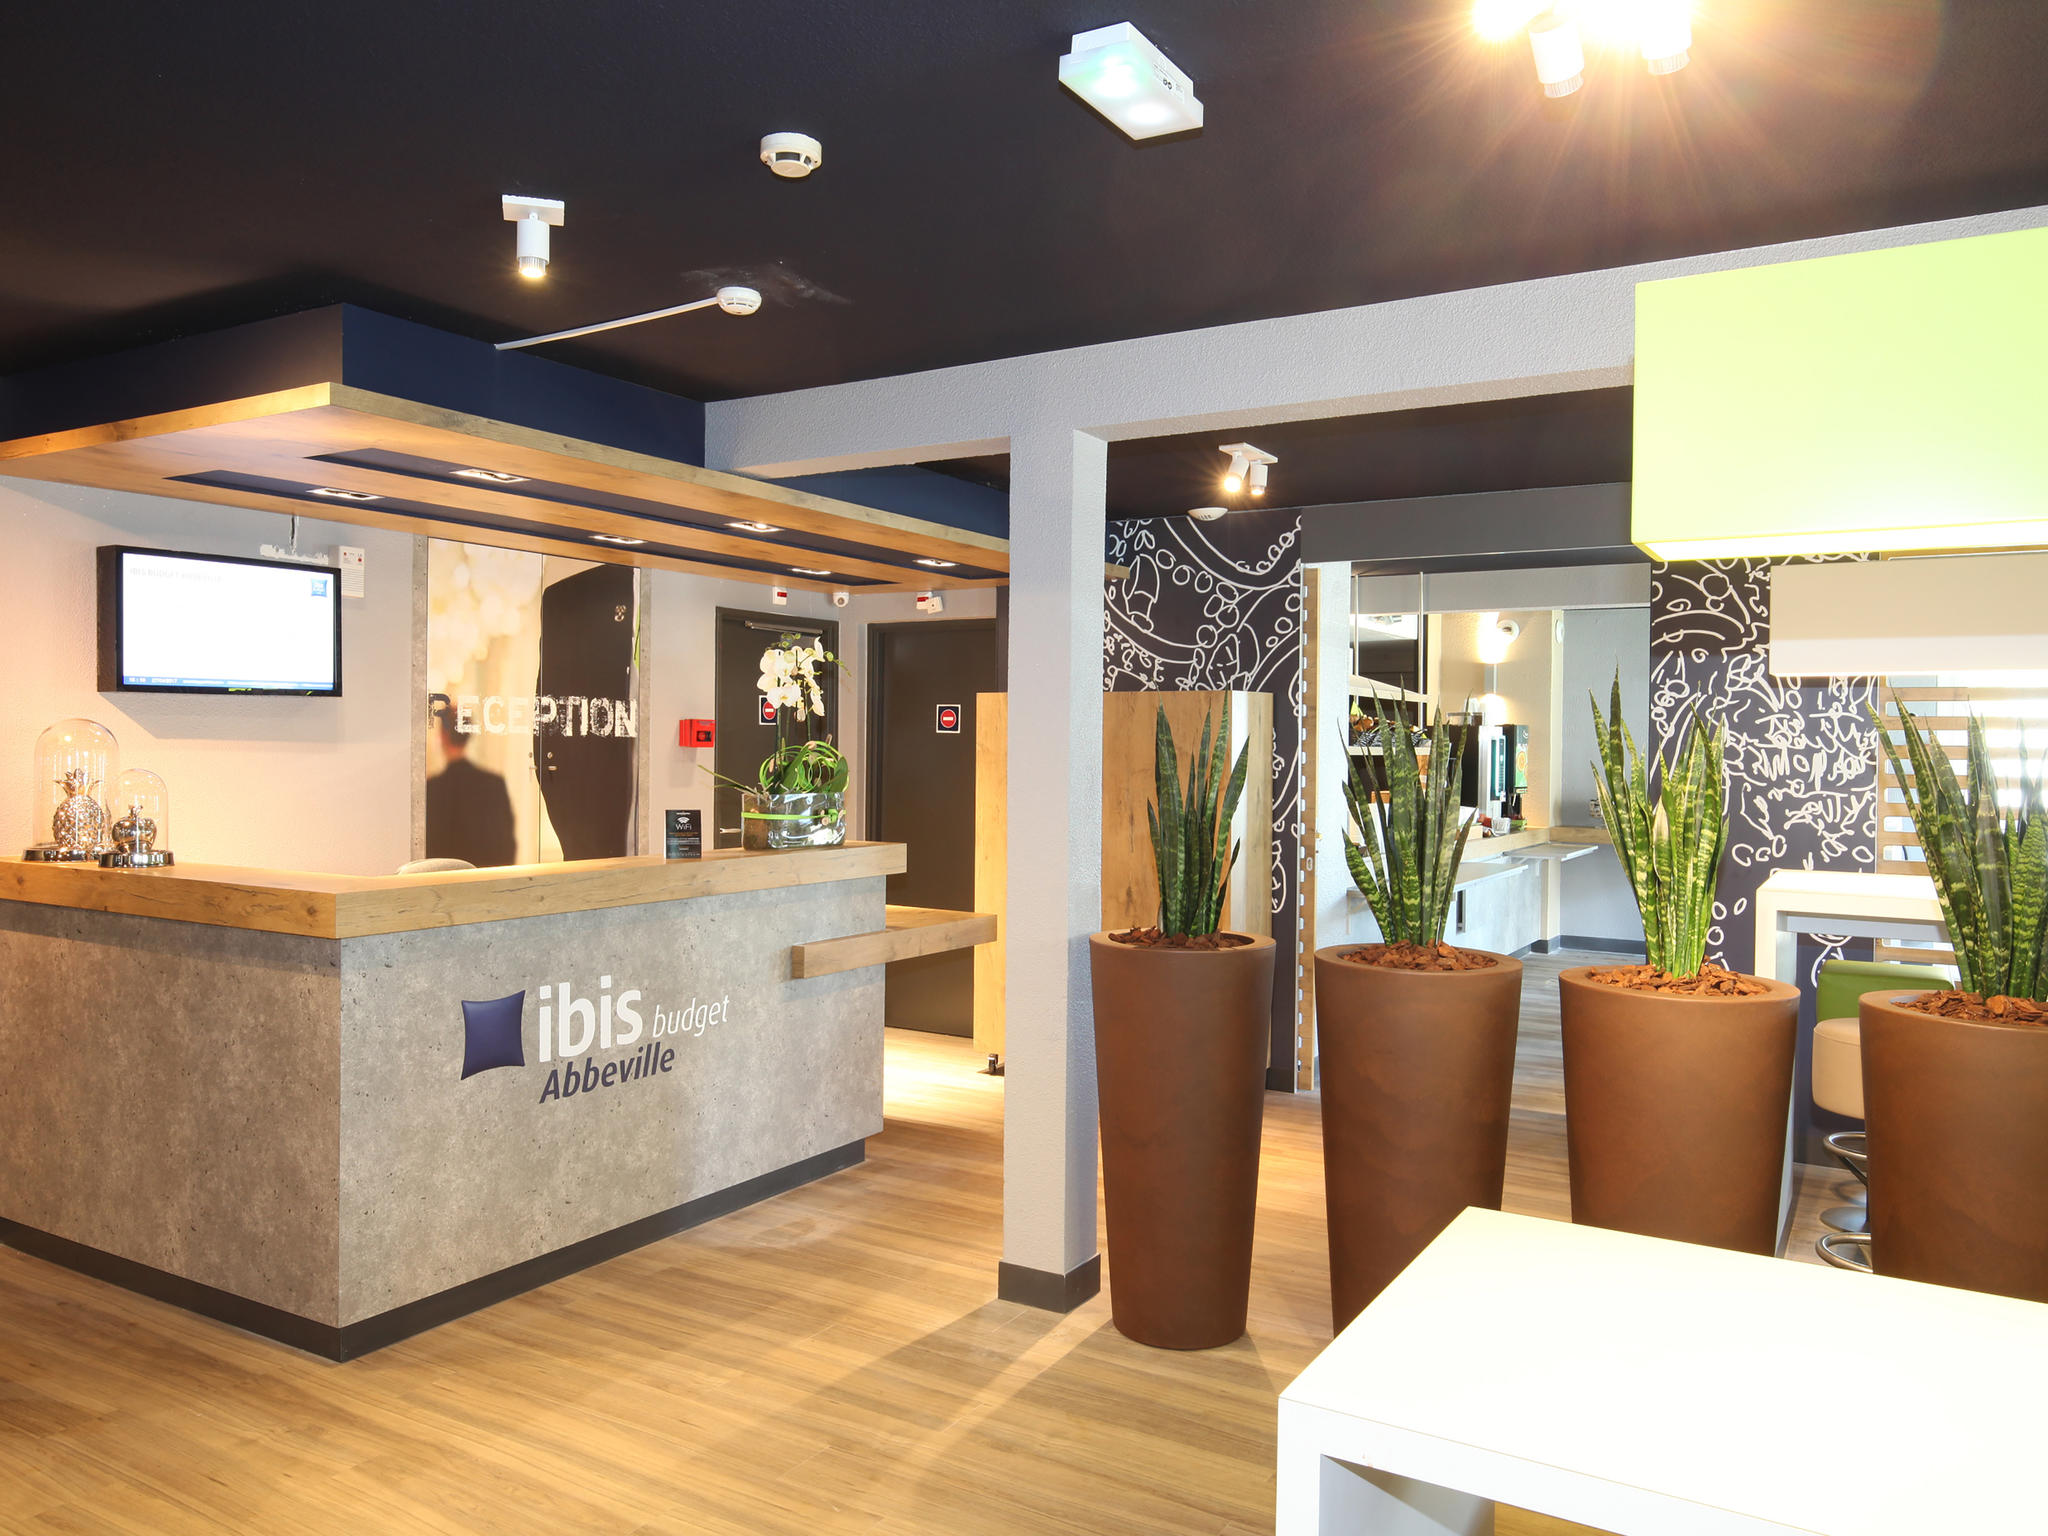 Hotell – ibis budget Abbeville